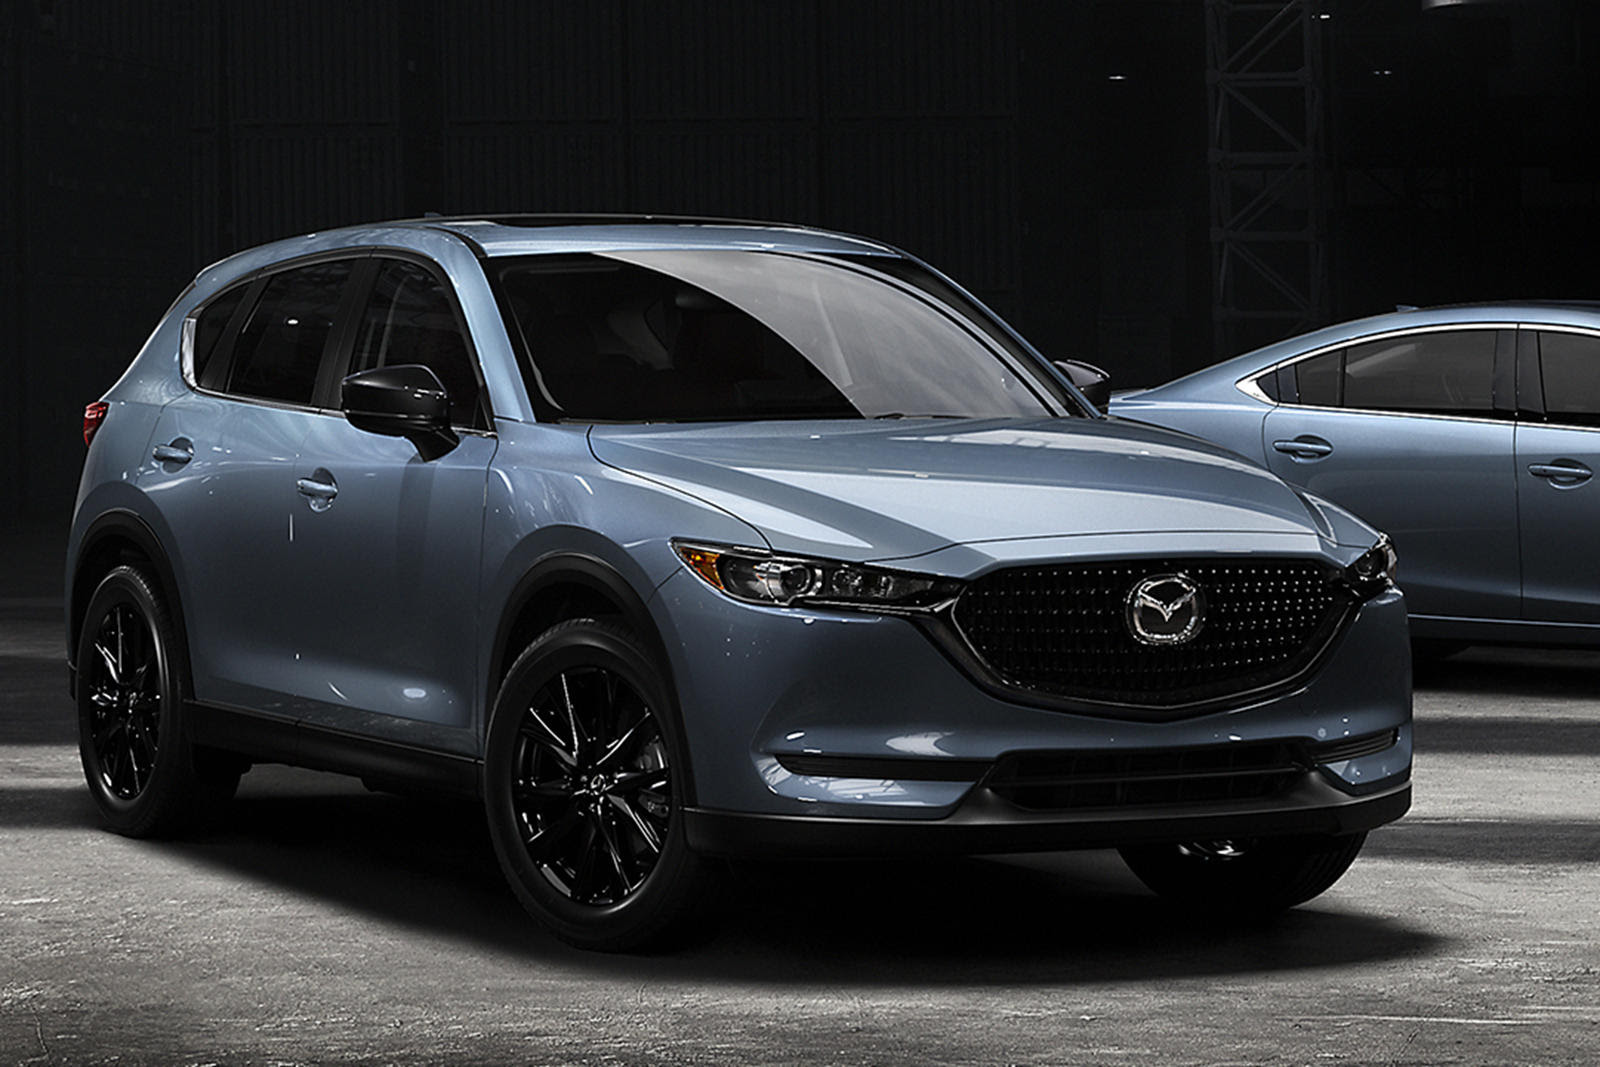 2021 mazda cx5 adds new carbon edition model  carbuzz